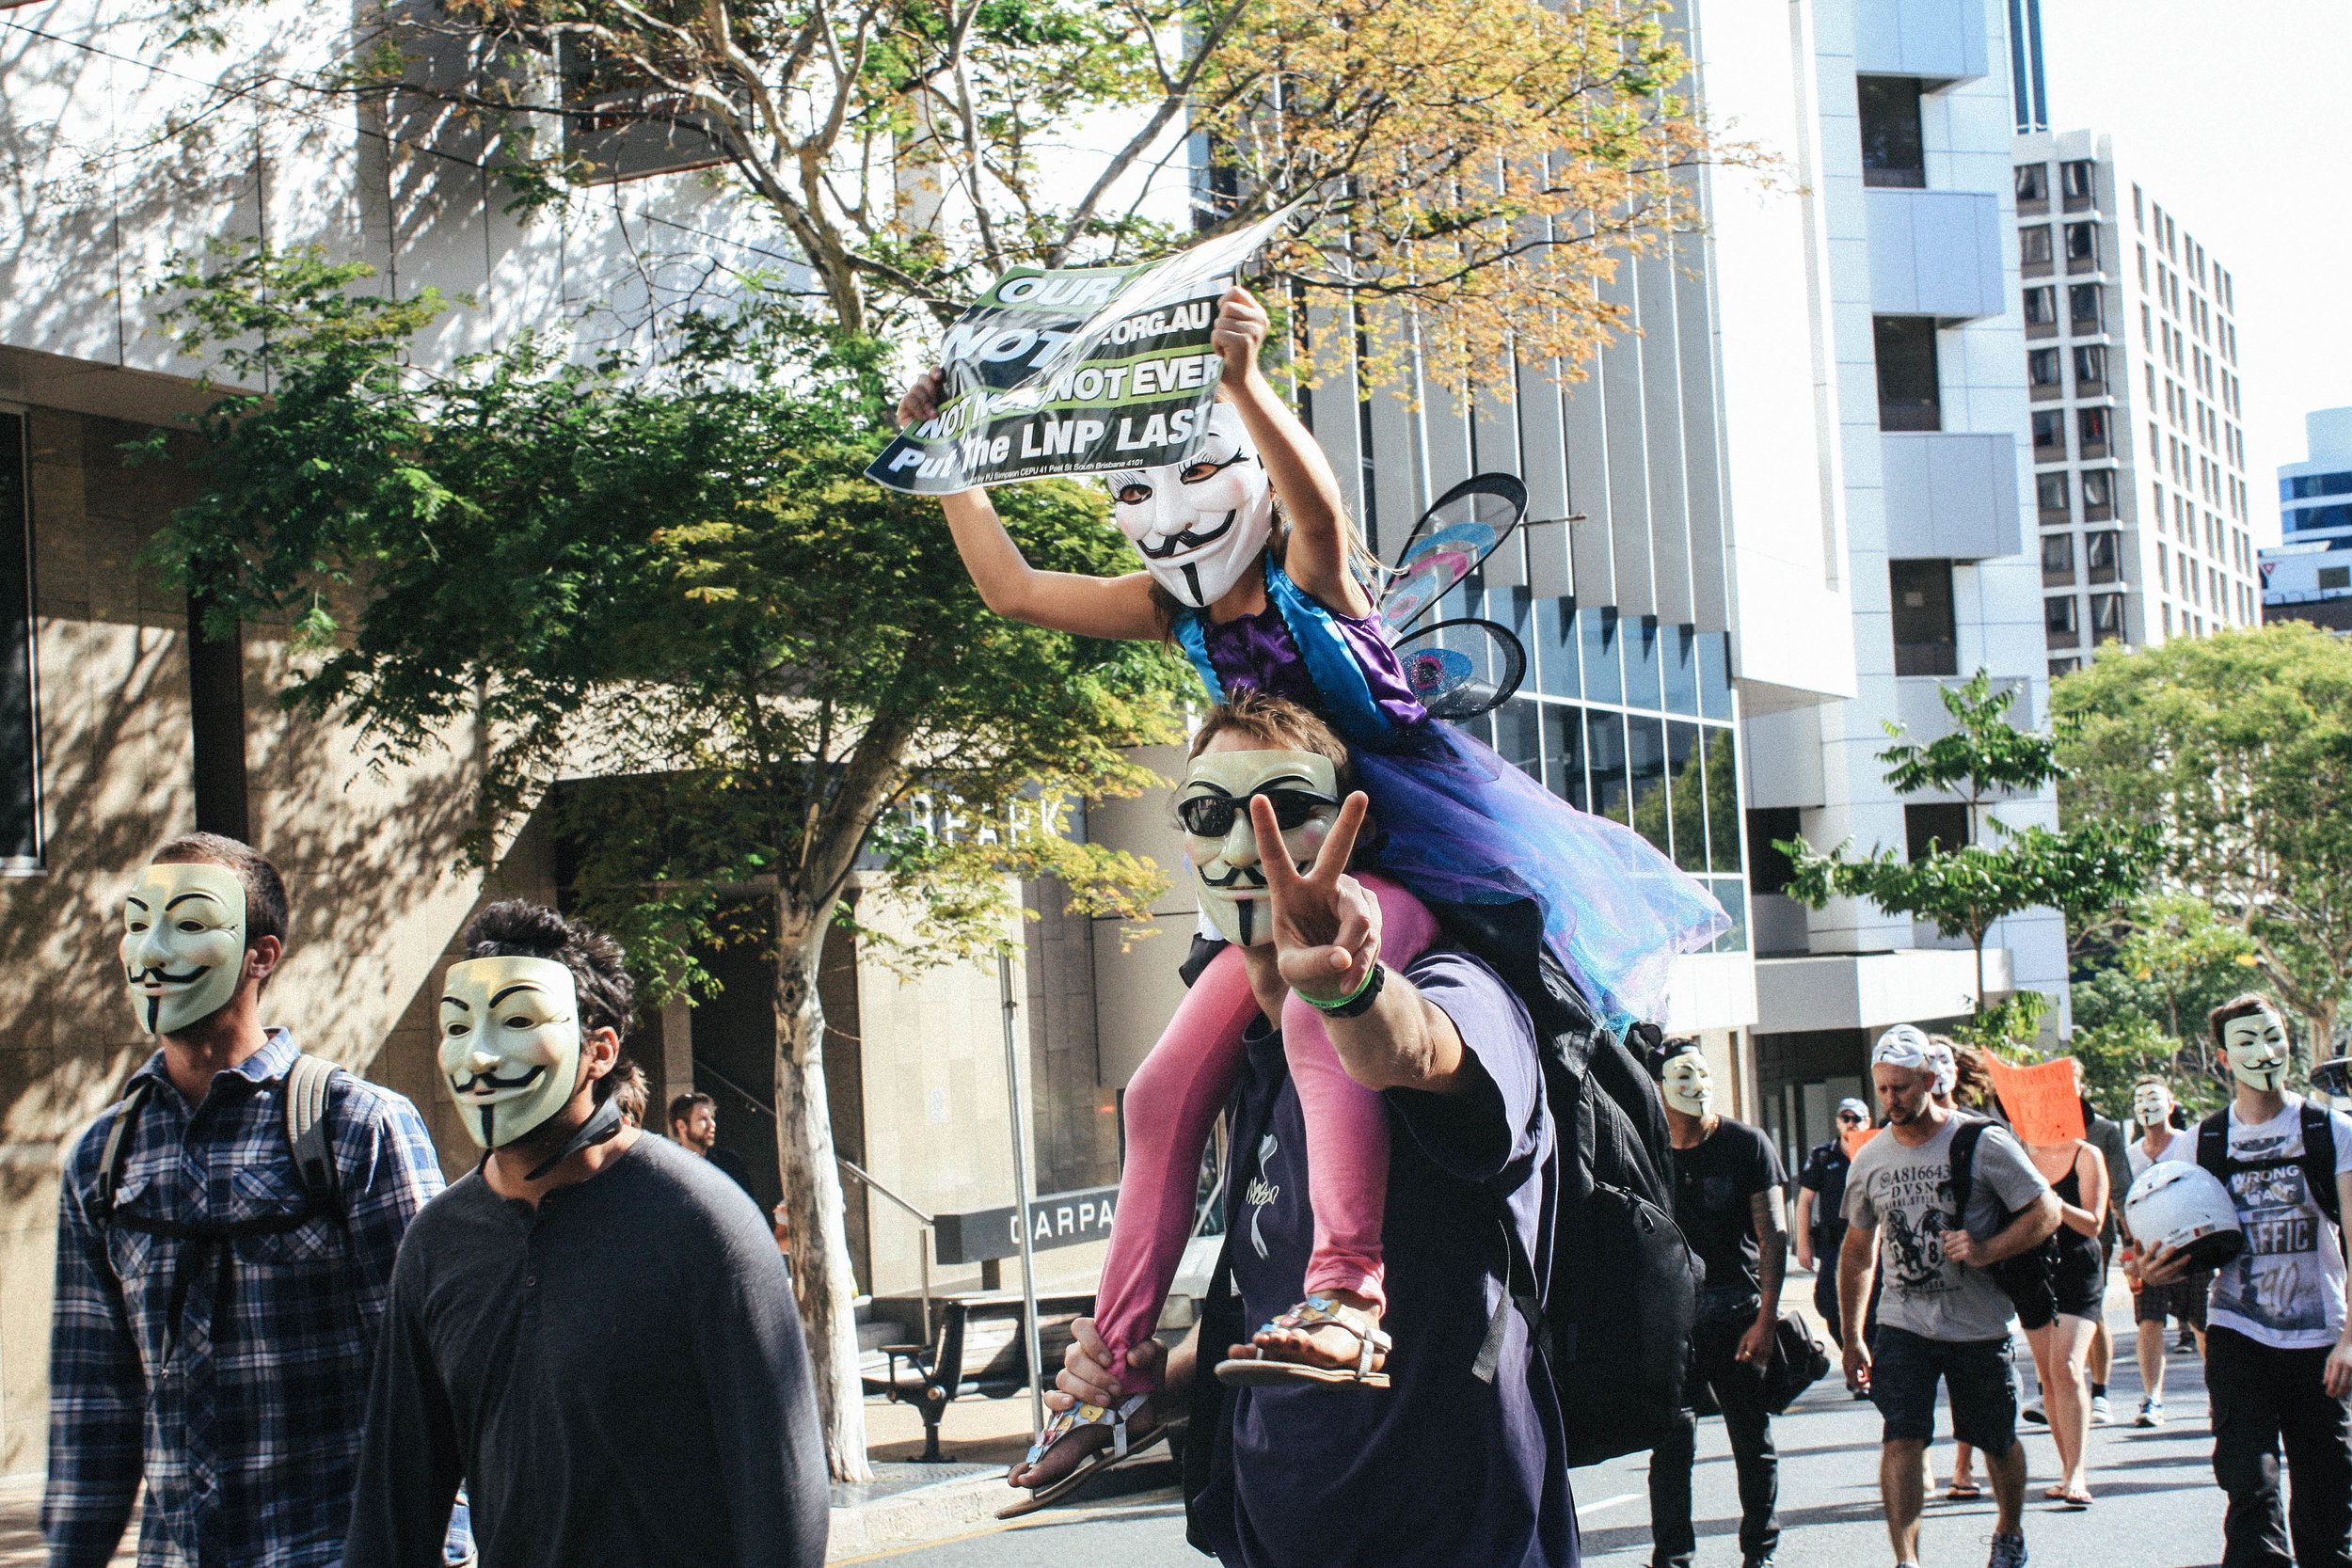 Lesly Lotha_Newzulu_Million_Mask_March_Brisbane_Australia_09